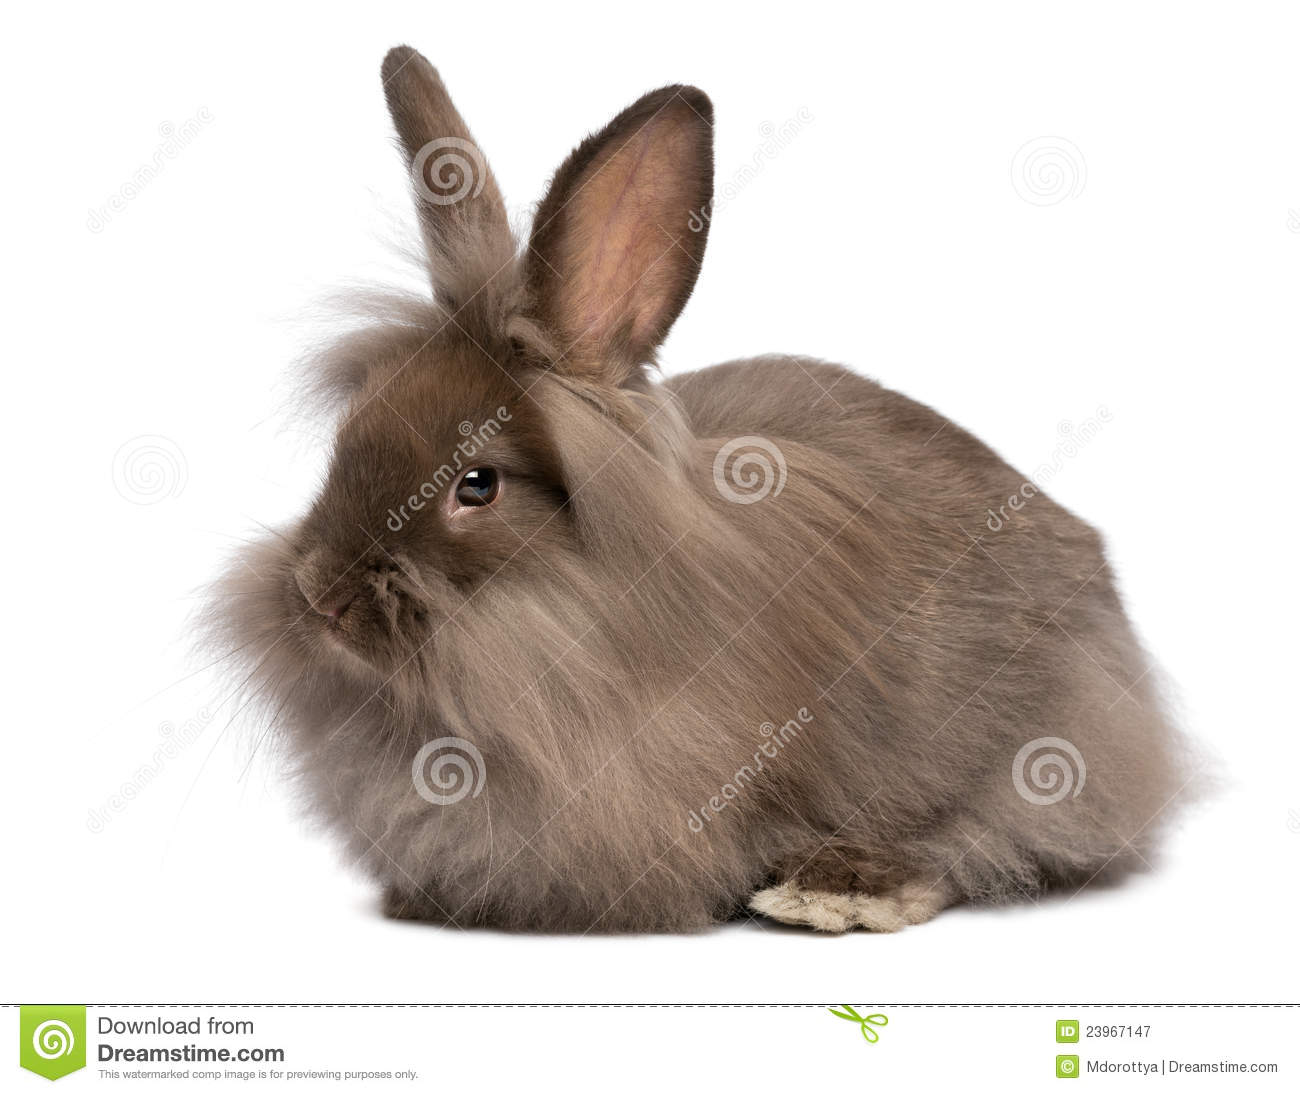 Cute White Baby Rabbits Wallpapers A Cute Lying Chocolate Lionhead Bunny Rabbit Royalty Free